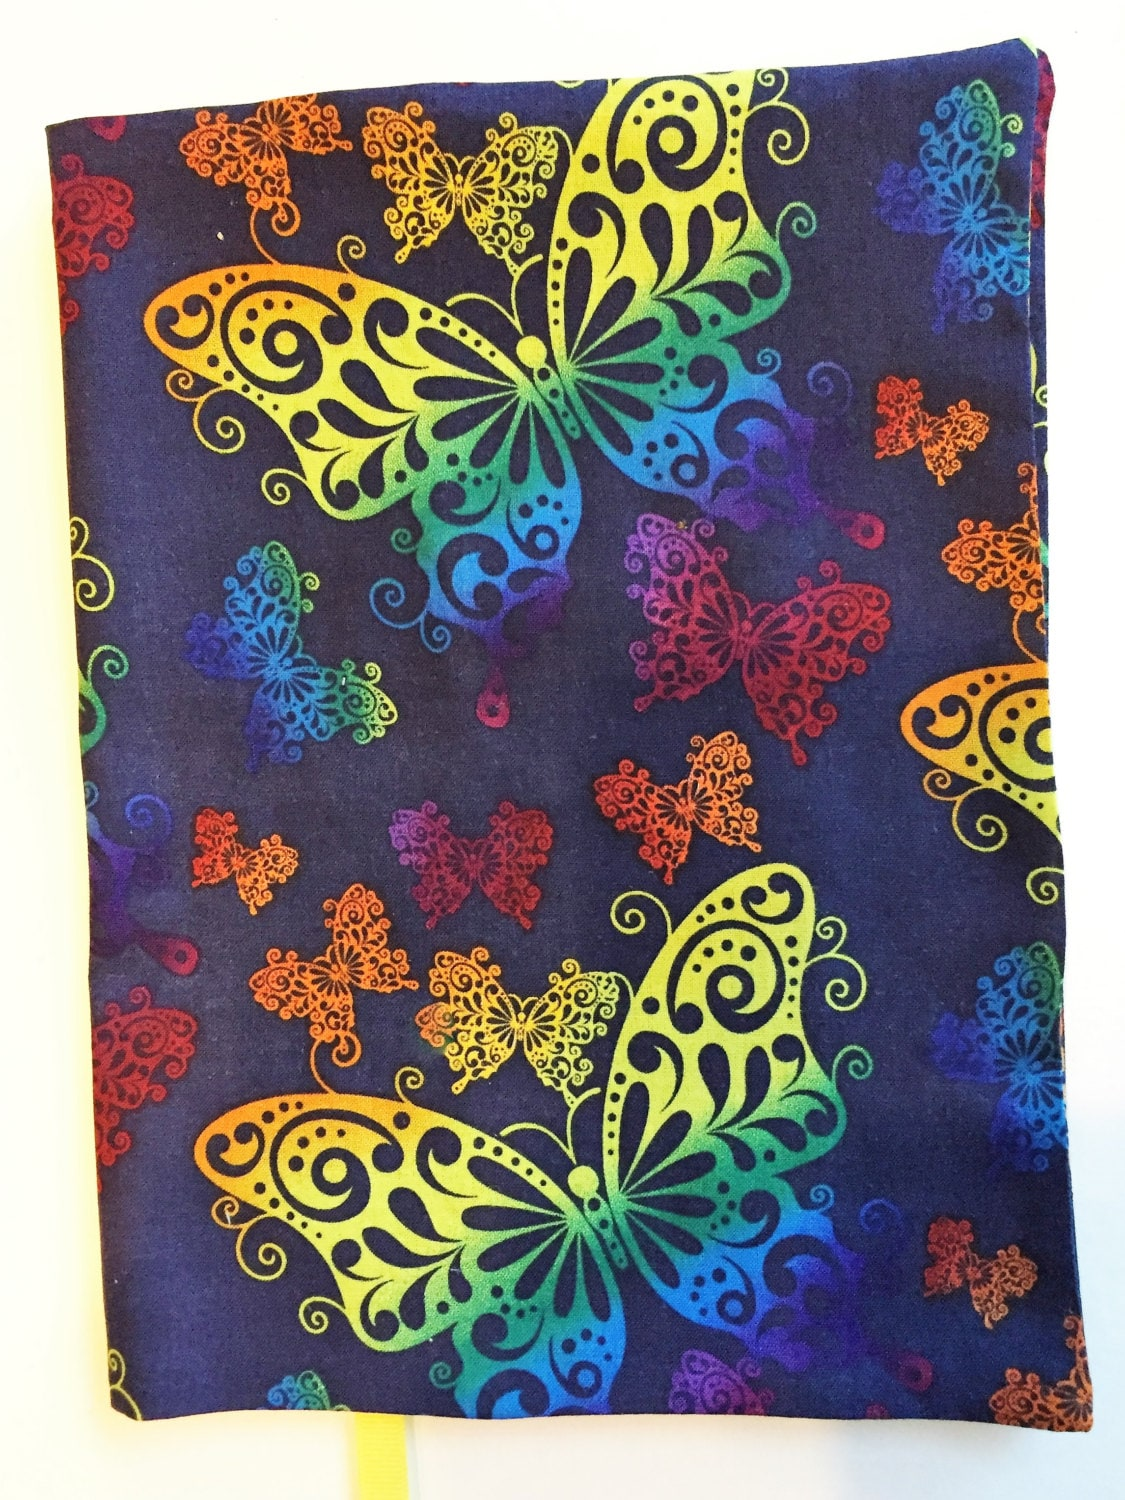 Fabric Hardcover Book : Hardback book cover fabric for